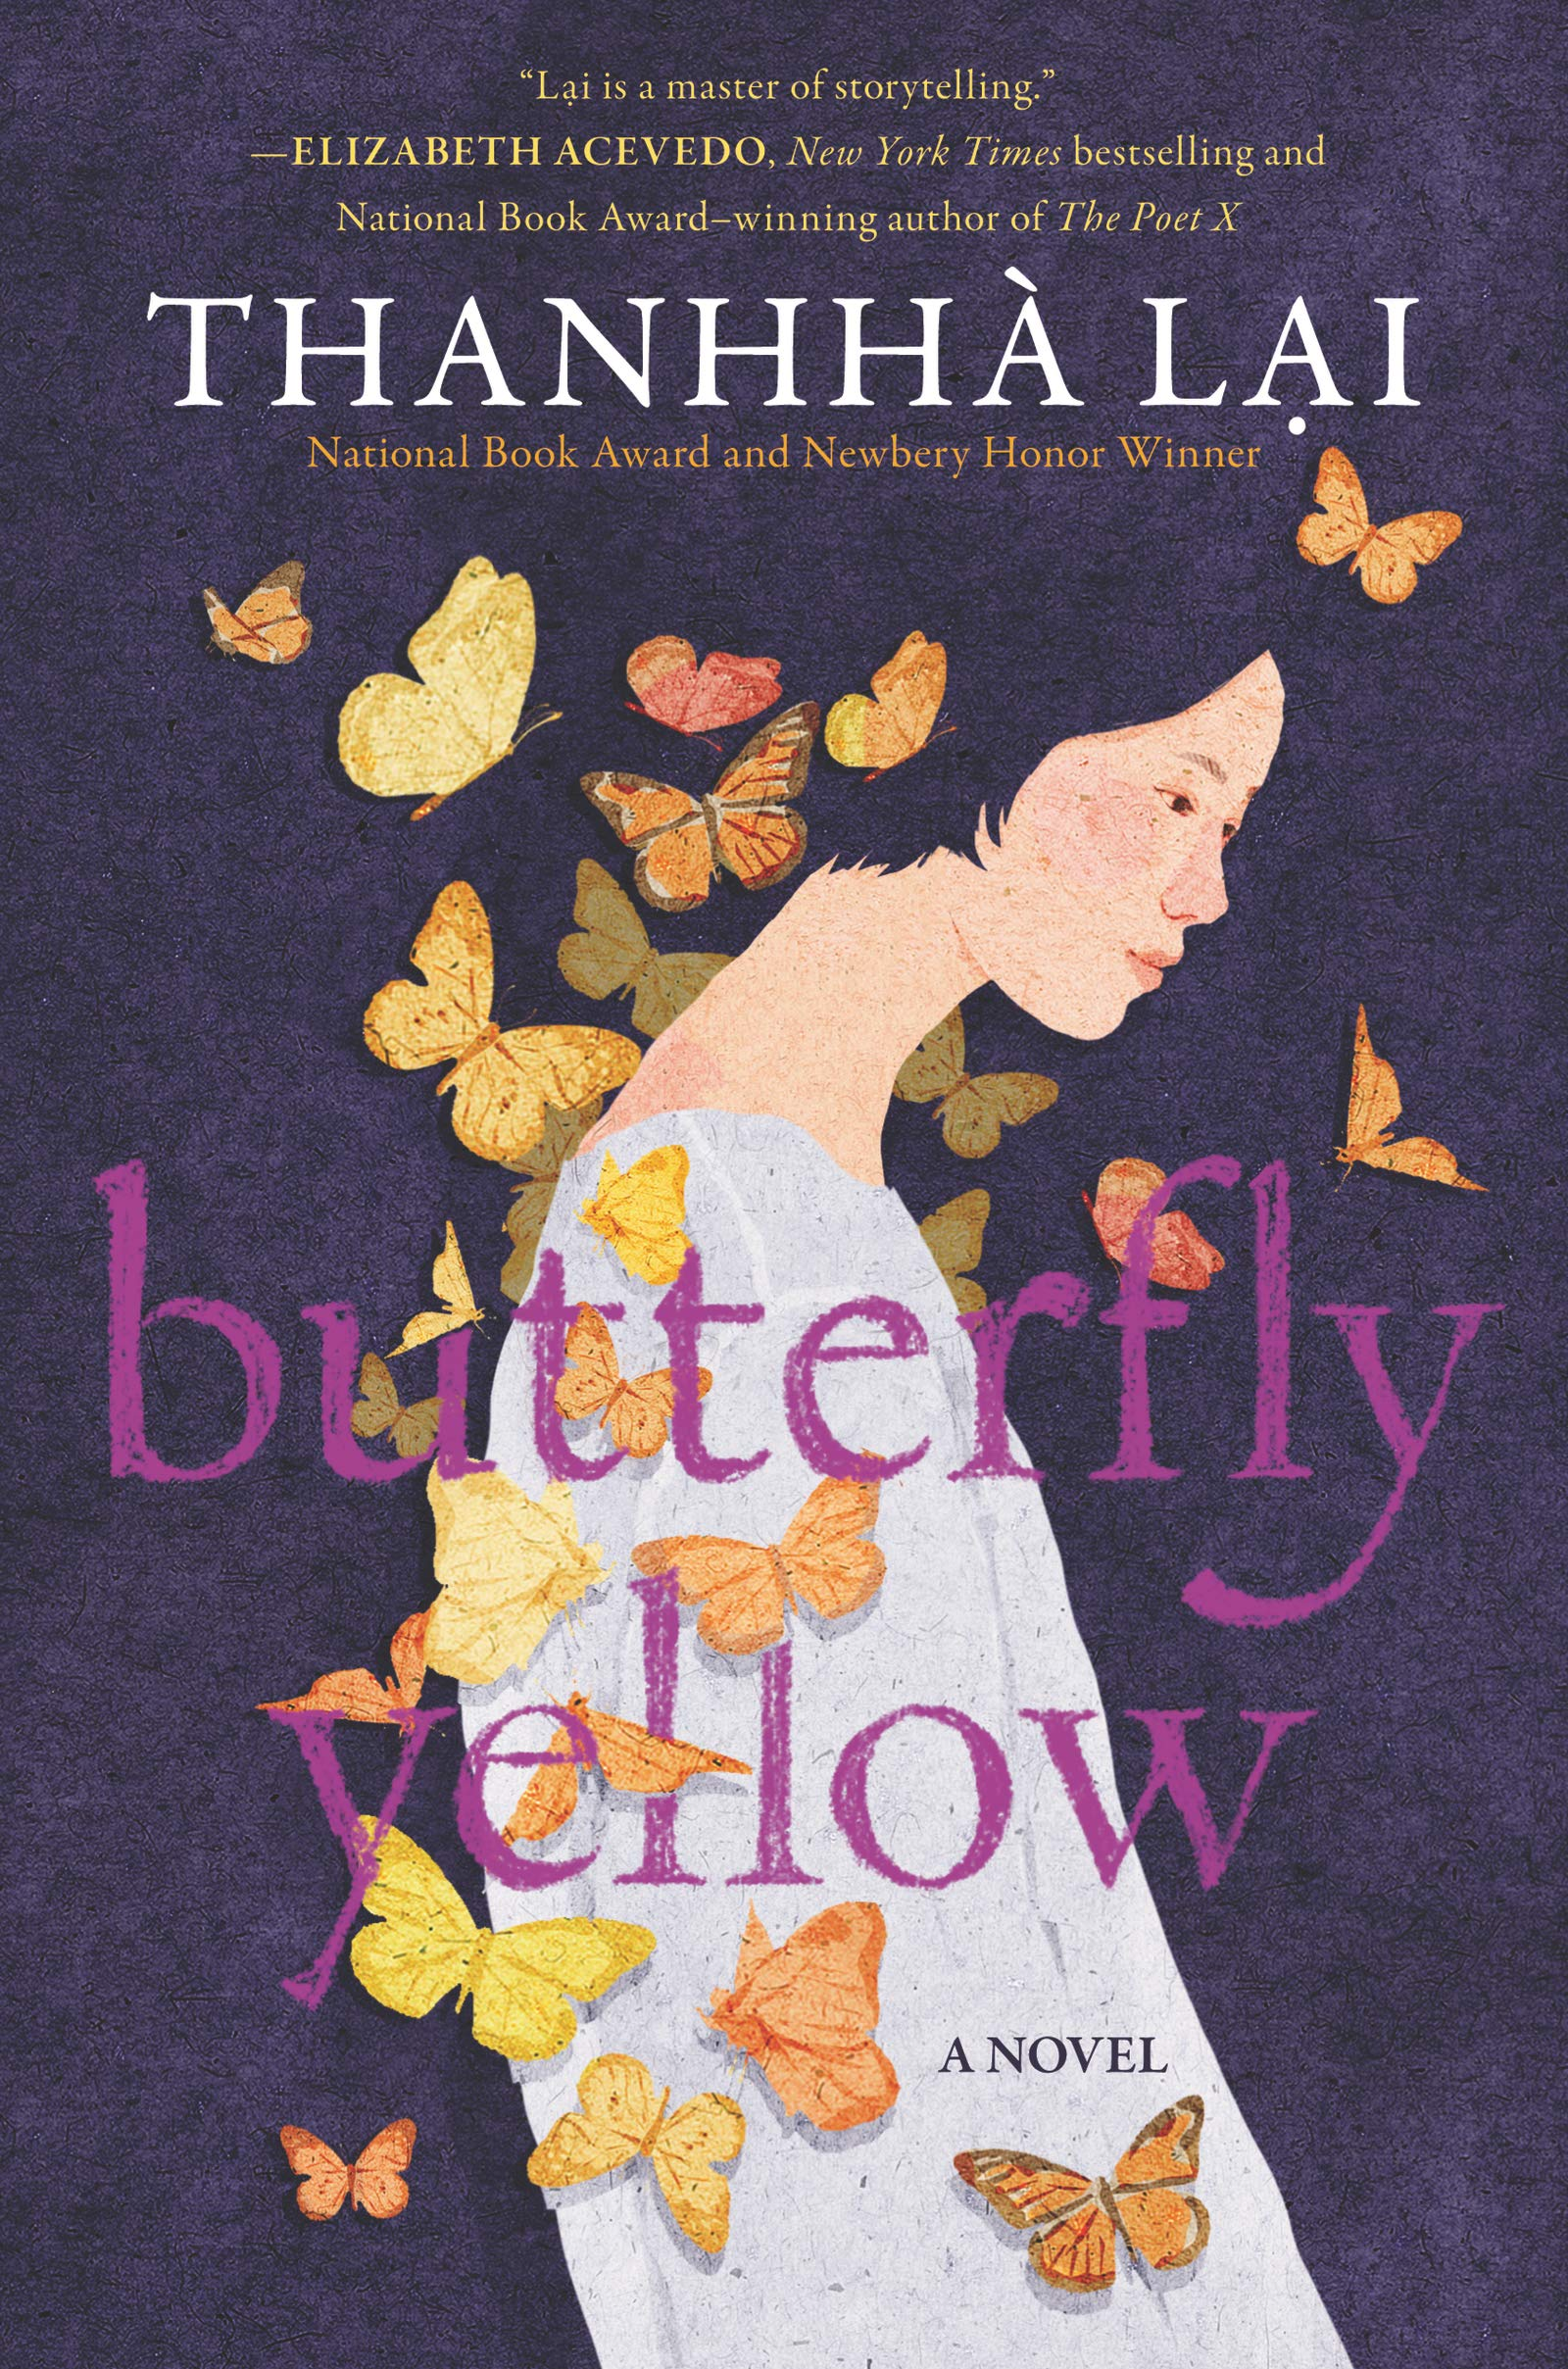 """Written by Thanhha LaiMany of our teen testers were already familiar with Lai's writing from reading Inside Out & Back Again, a middle-school favorite and Parents Best Children's Book in 2011. Her new novel about siblings separated near the end of the Vietnam War also gives readers a window in the life of a refugee—and its long-term implications. When the brother and sister are finally reunited six years later, he doesn't know who she is. """"This book is about wanting to forget the past while wanting nothing more than for someone else to remember,"""" says Kyra, a high-school sophomore."""